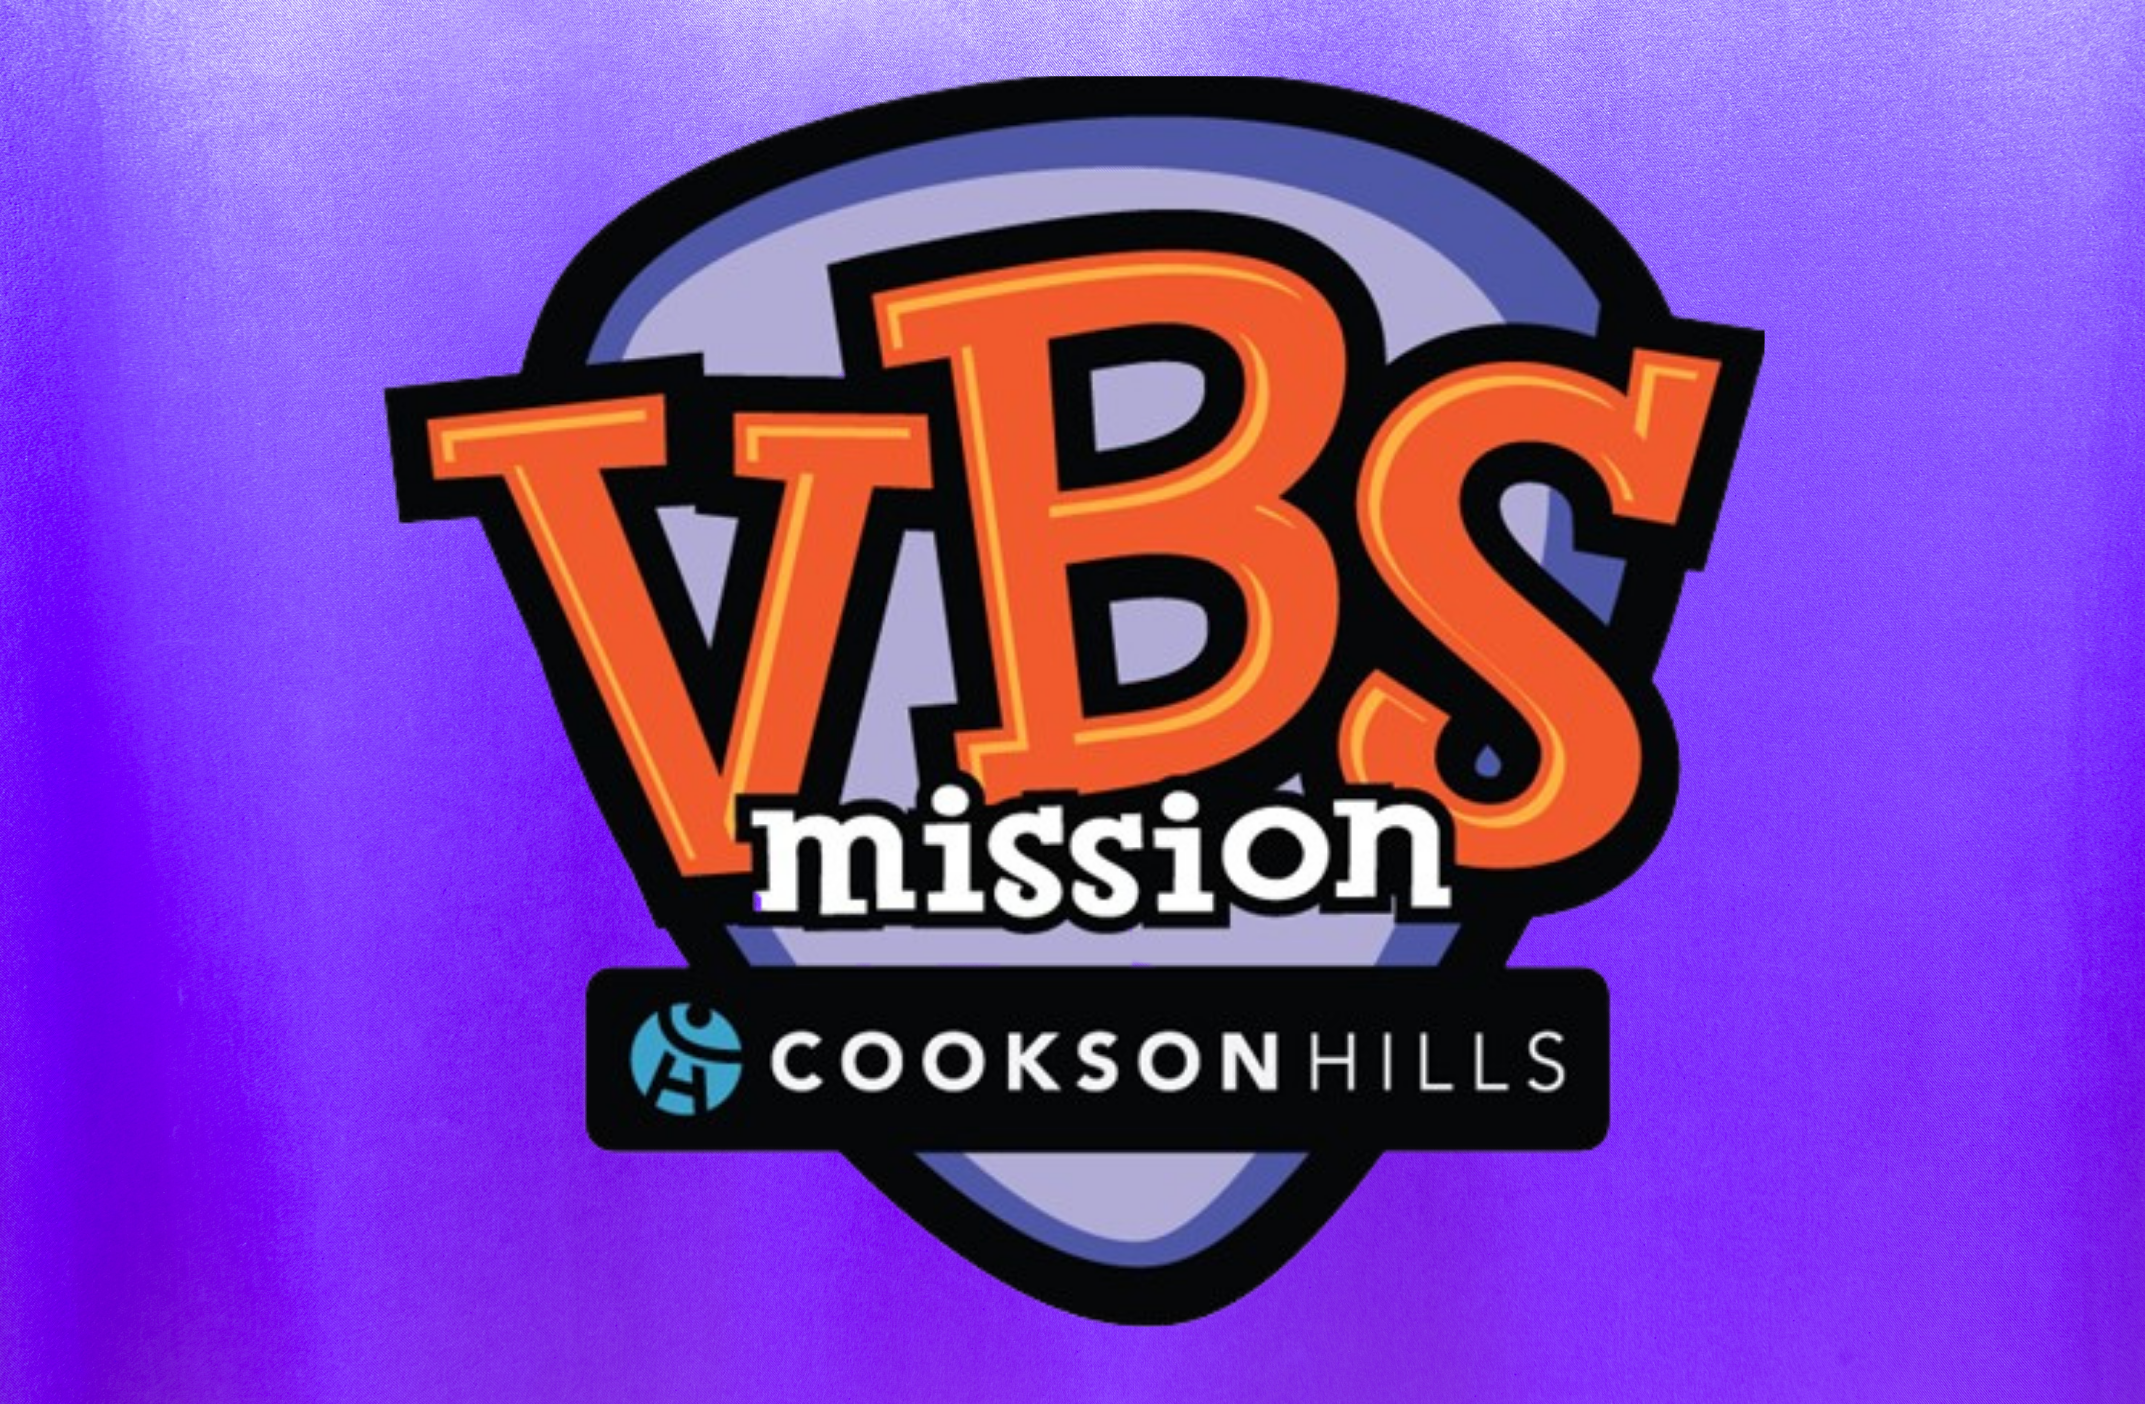 VBS, Mission,